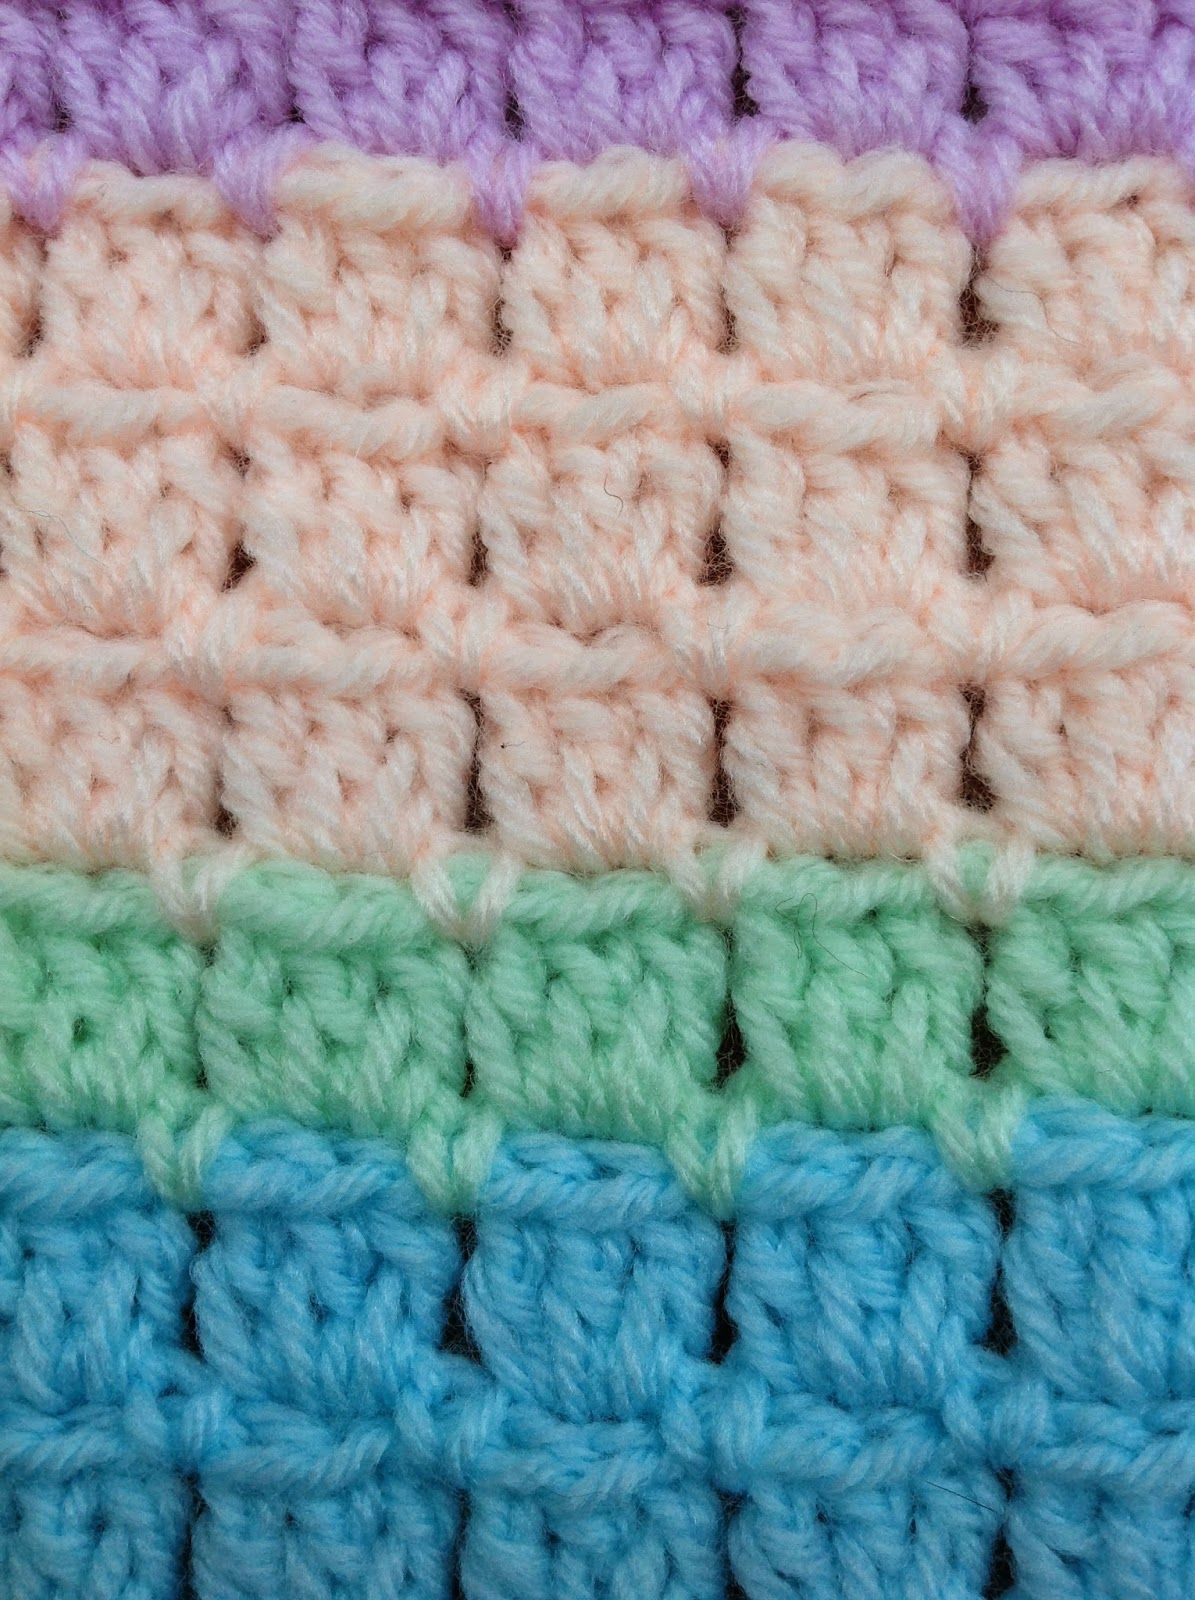 Afghan baby blanket block stitch crochet free blanket free afghan baby blanket block stitch crochet free blanket free crochet pattern bankloansurffo Image collections